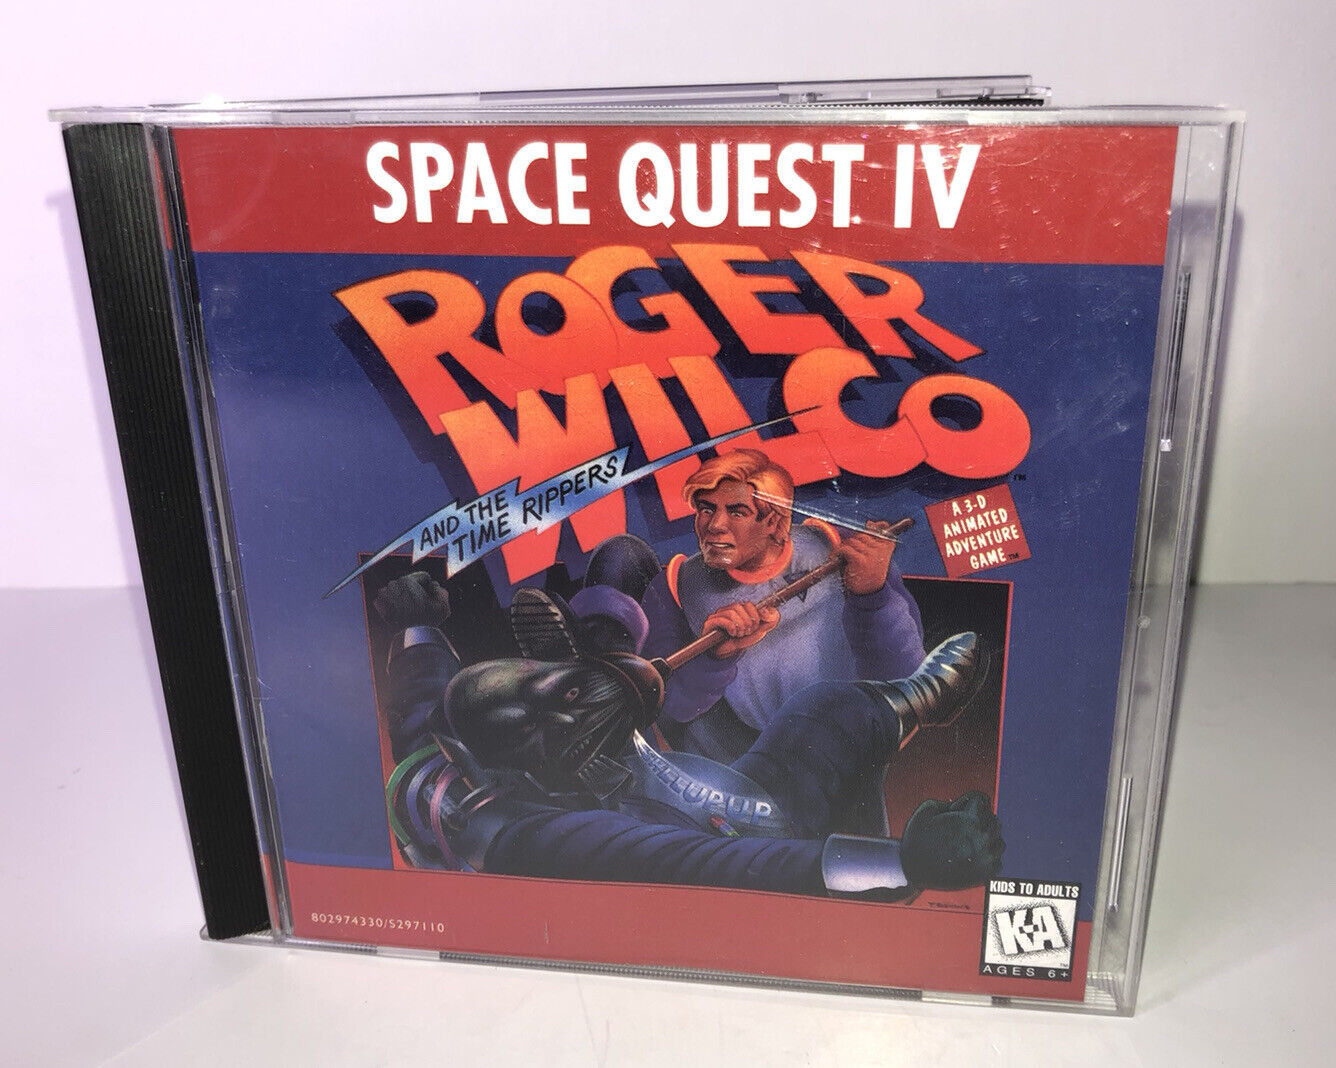 Space Quest Iv Roger Wilco And The Time Rippers Pc 1991 For Sale Online Ebay